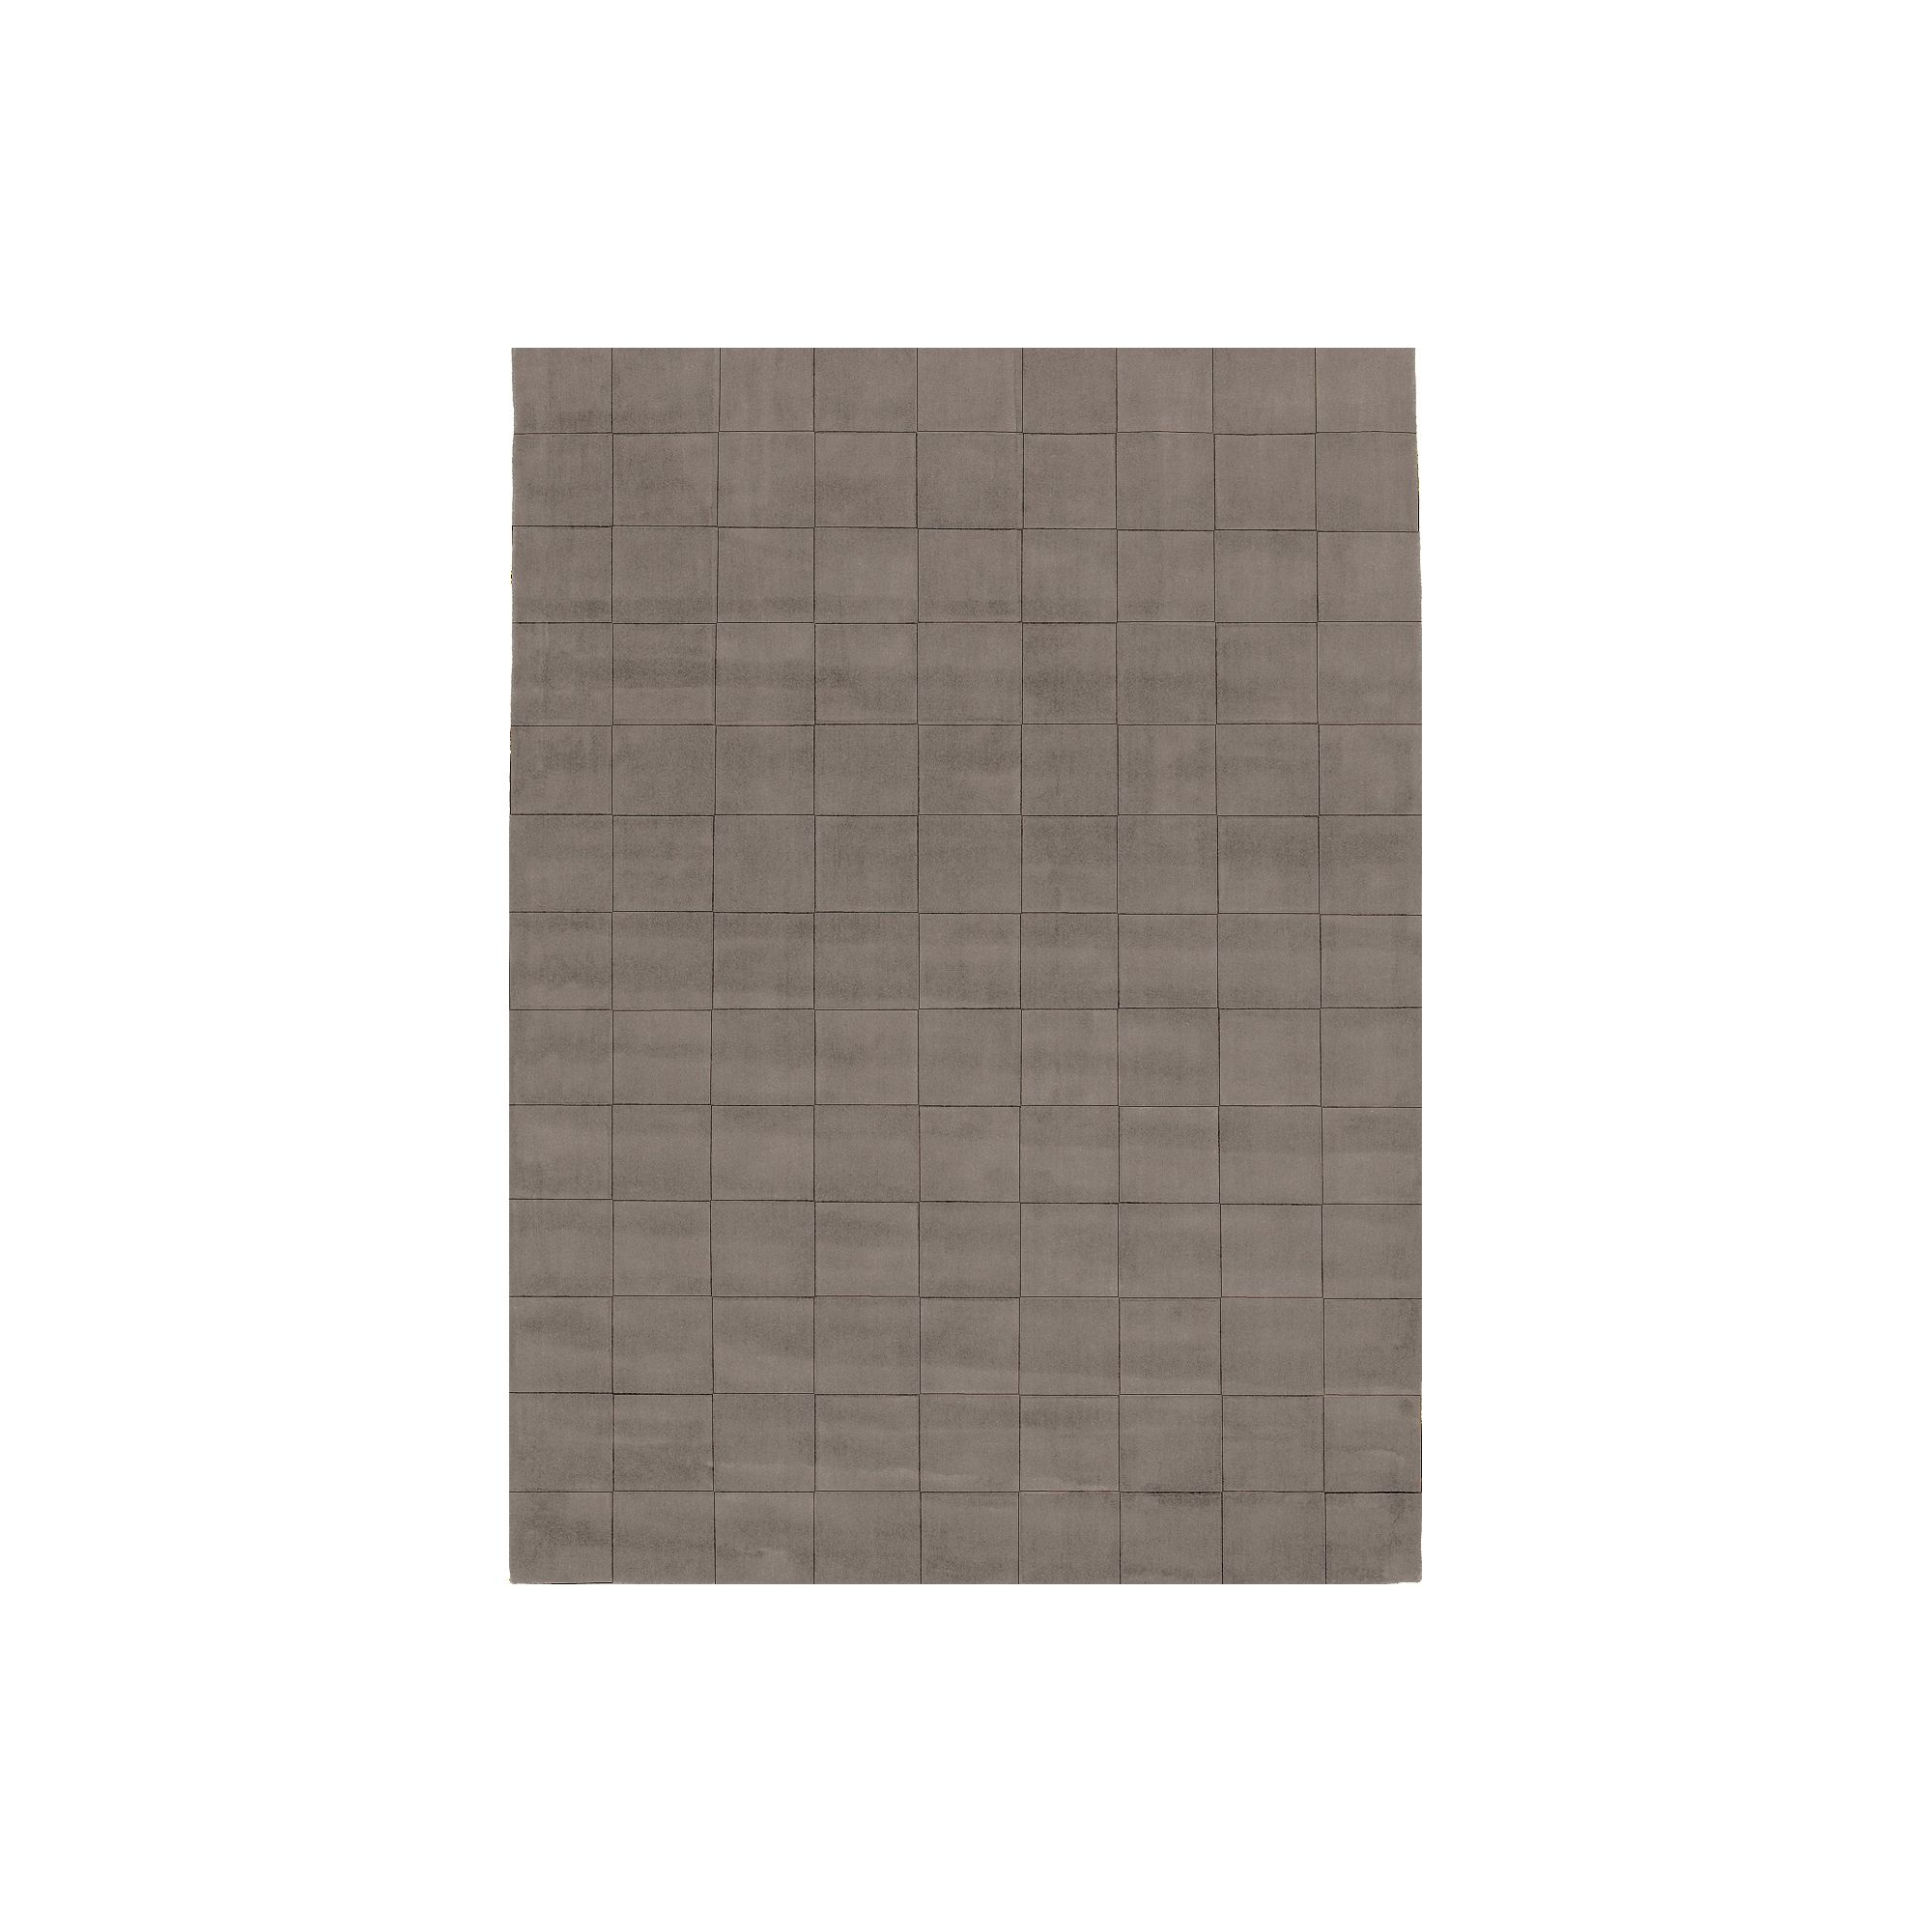 Linie Design Luzern Grey Rug - 240cm x 170cm at Tesco Direct